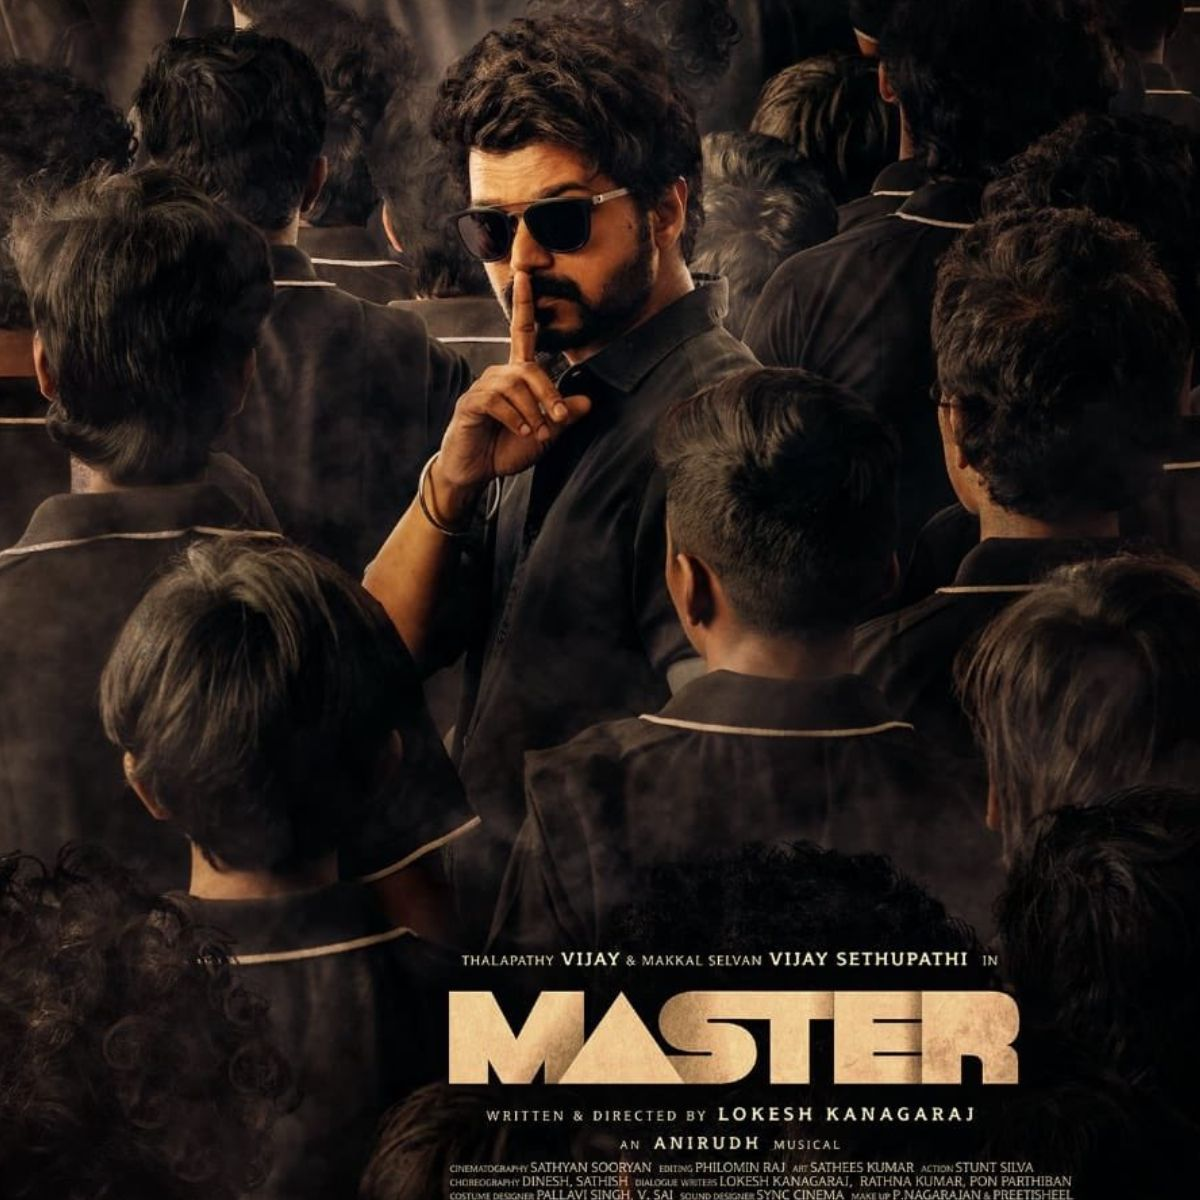 Vijay S Master Tops 2020 Twitter Movie Charts Followed By Vakeel Saab And Valimai Check Out The Full List Up The Movie Movie Stars Movie Ringtones